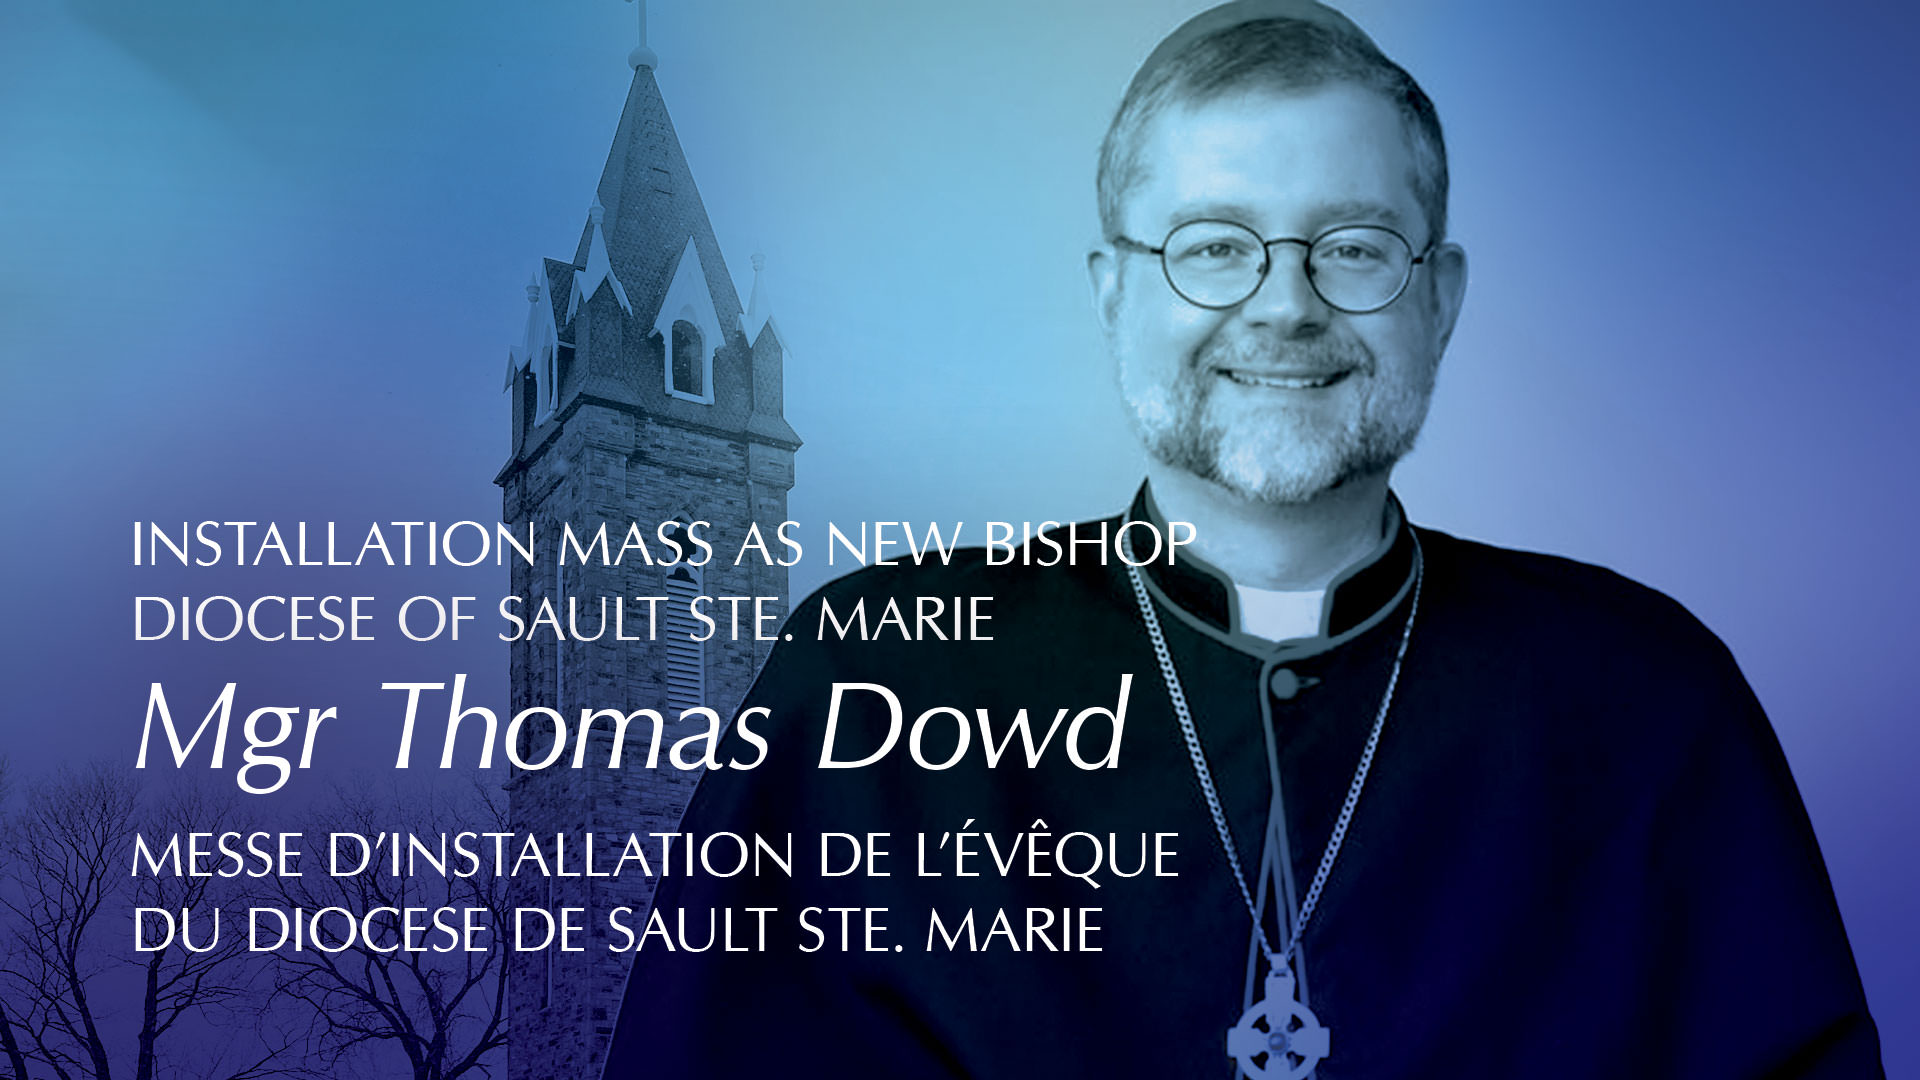 Installation Mass of Most Rev. Thomas Dowd, Bishop of Sault Ste. Marie